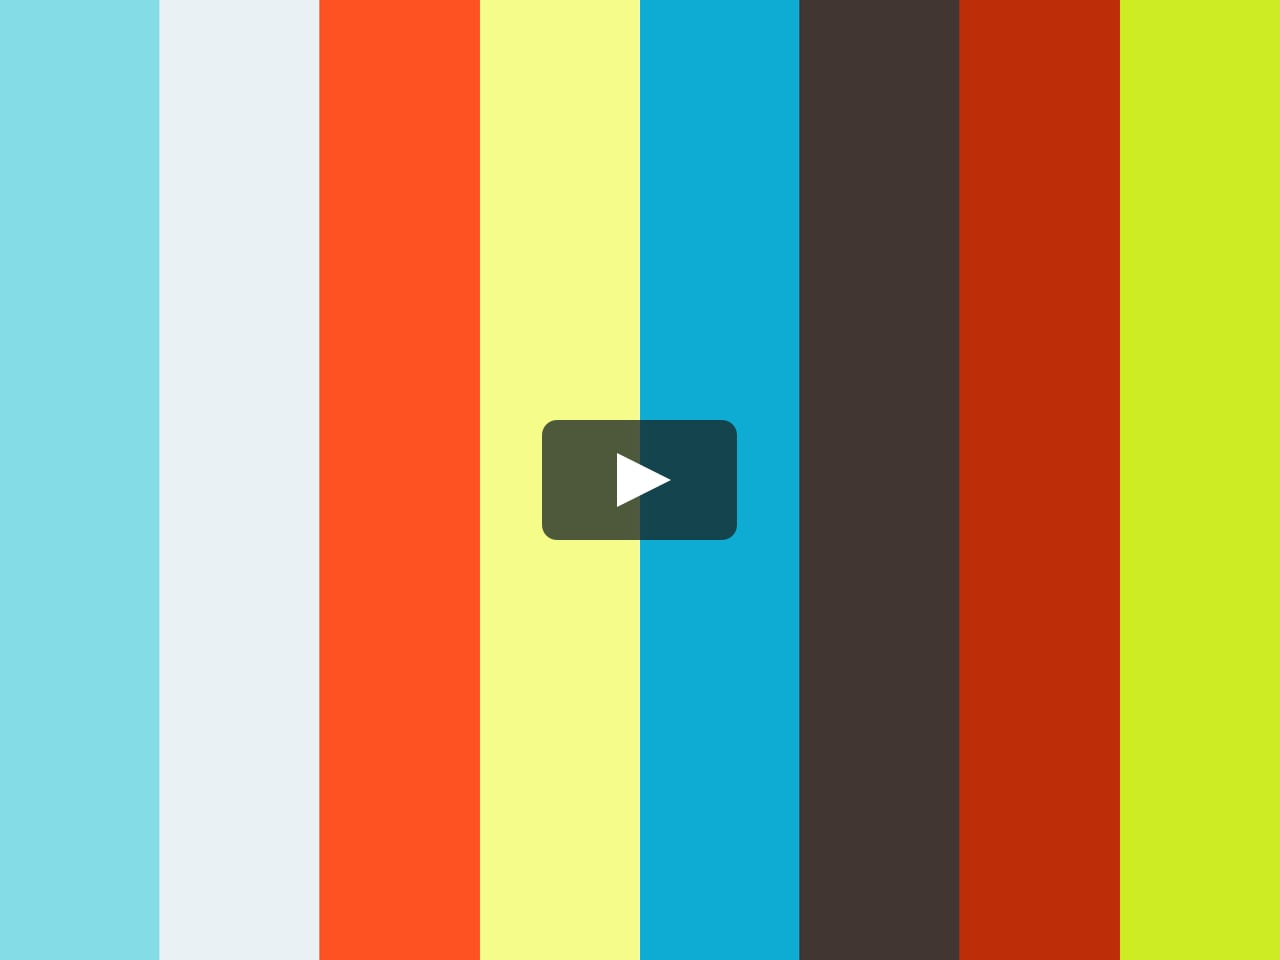 MOS VLSI Circuit Module 4 on Vimeo